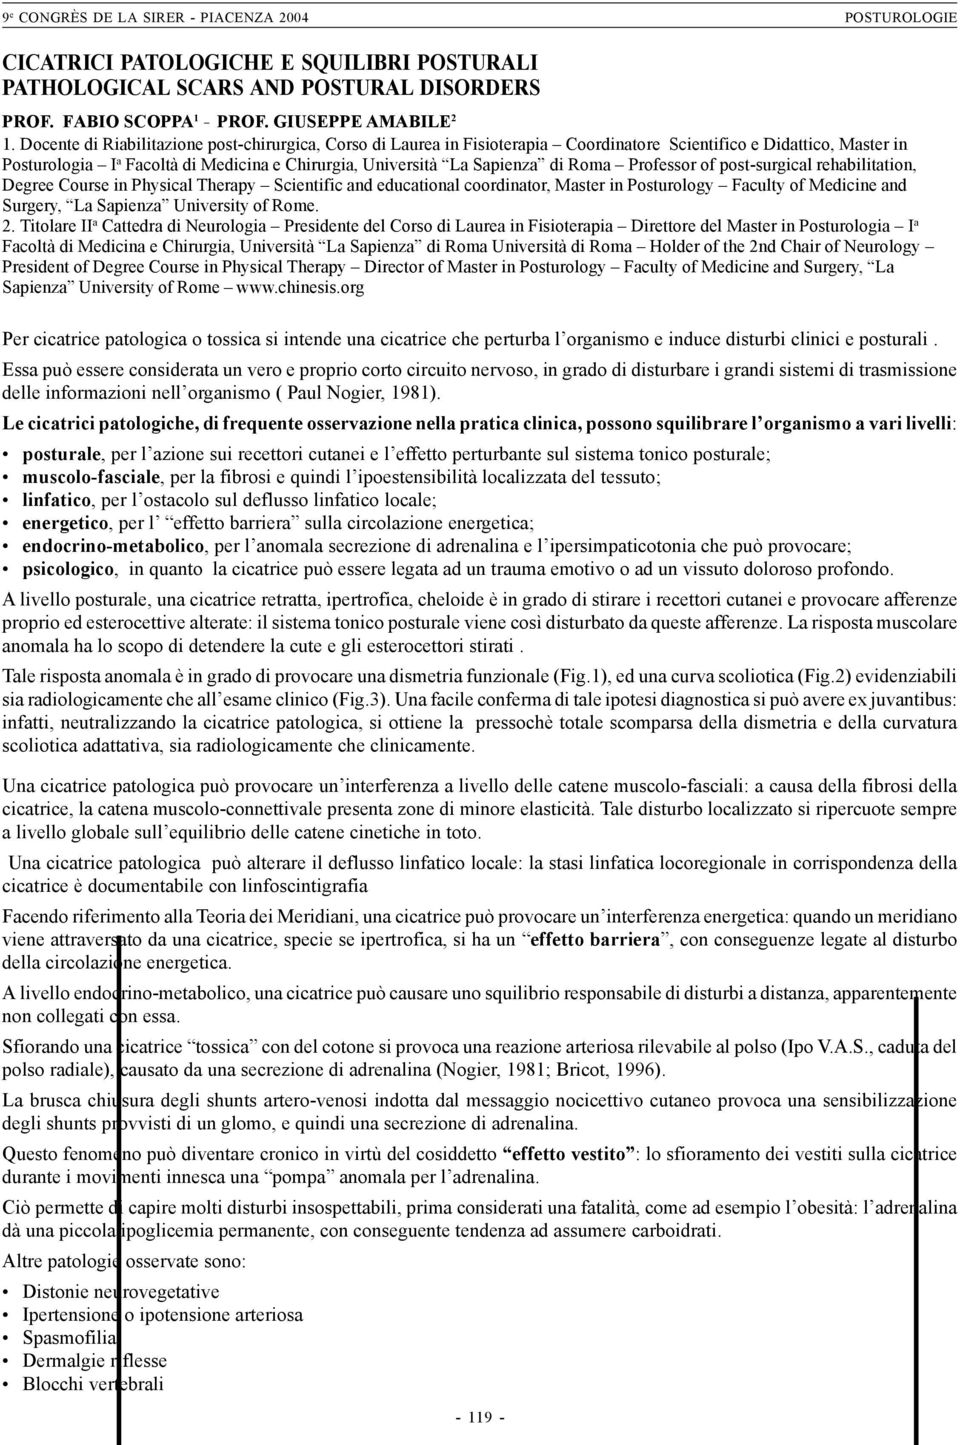 Roma Professor of post-surgical rehabilitation, Degree Course in Physical Therapy Scientific and educational coordinator, Master in Posturology Faculty of Medicine and Surgery, La Sapienza University